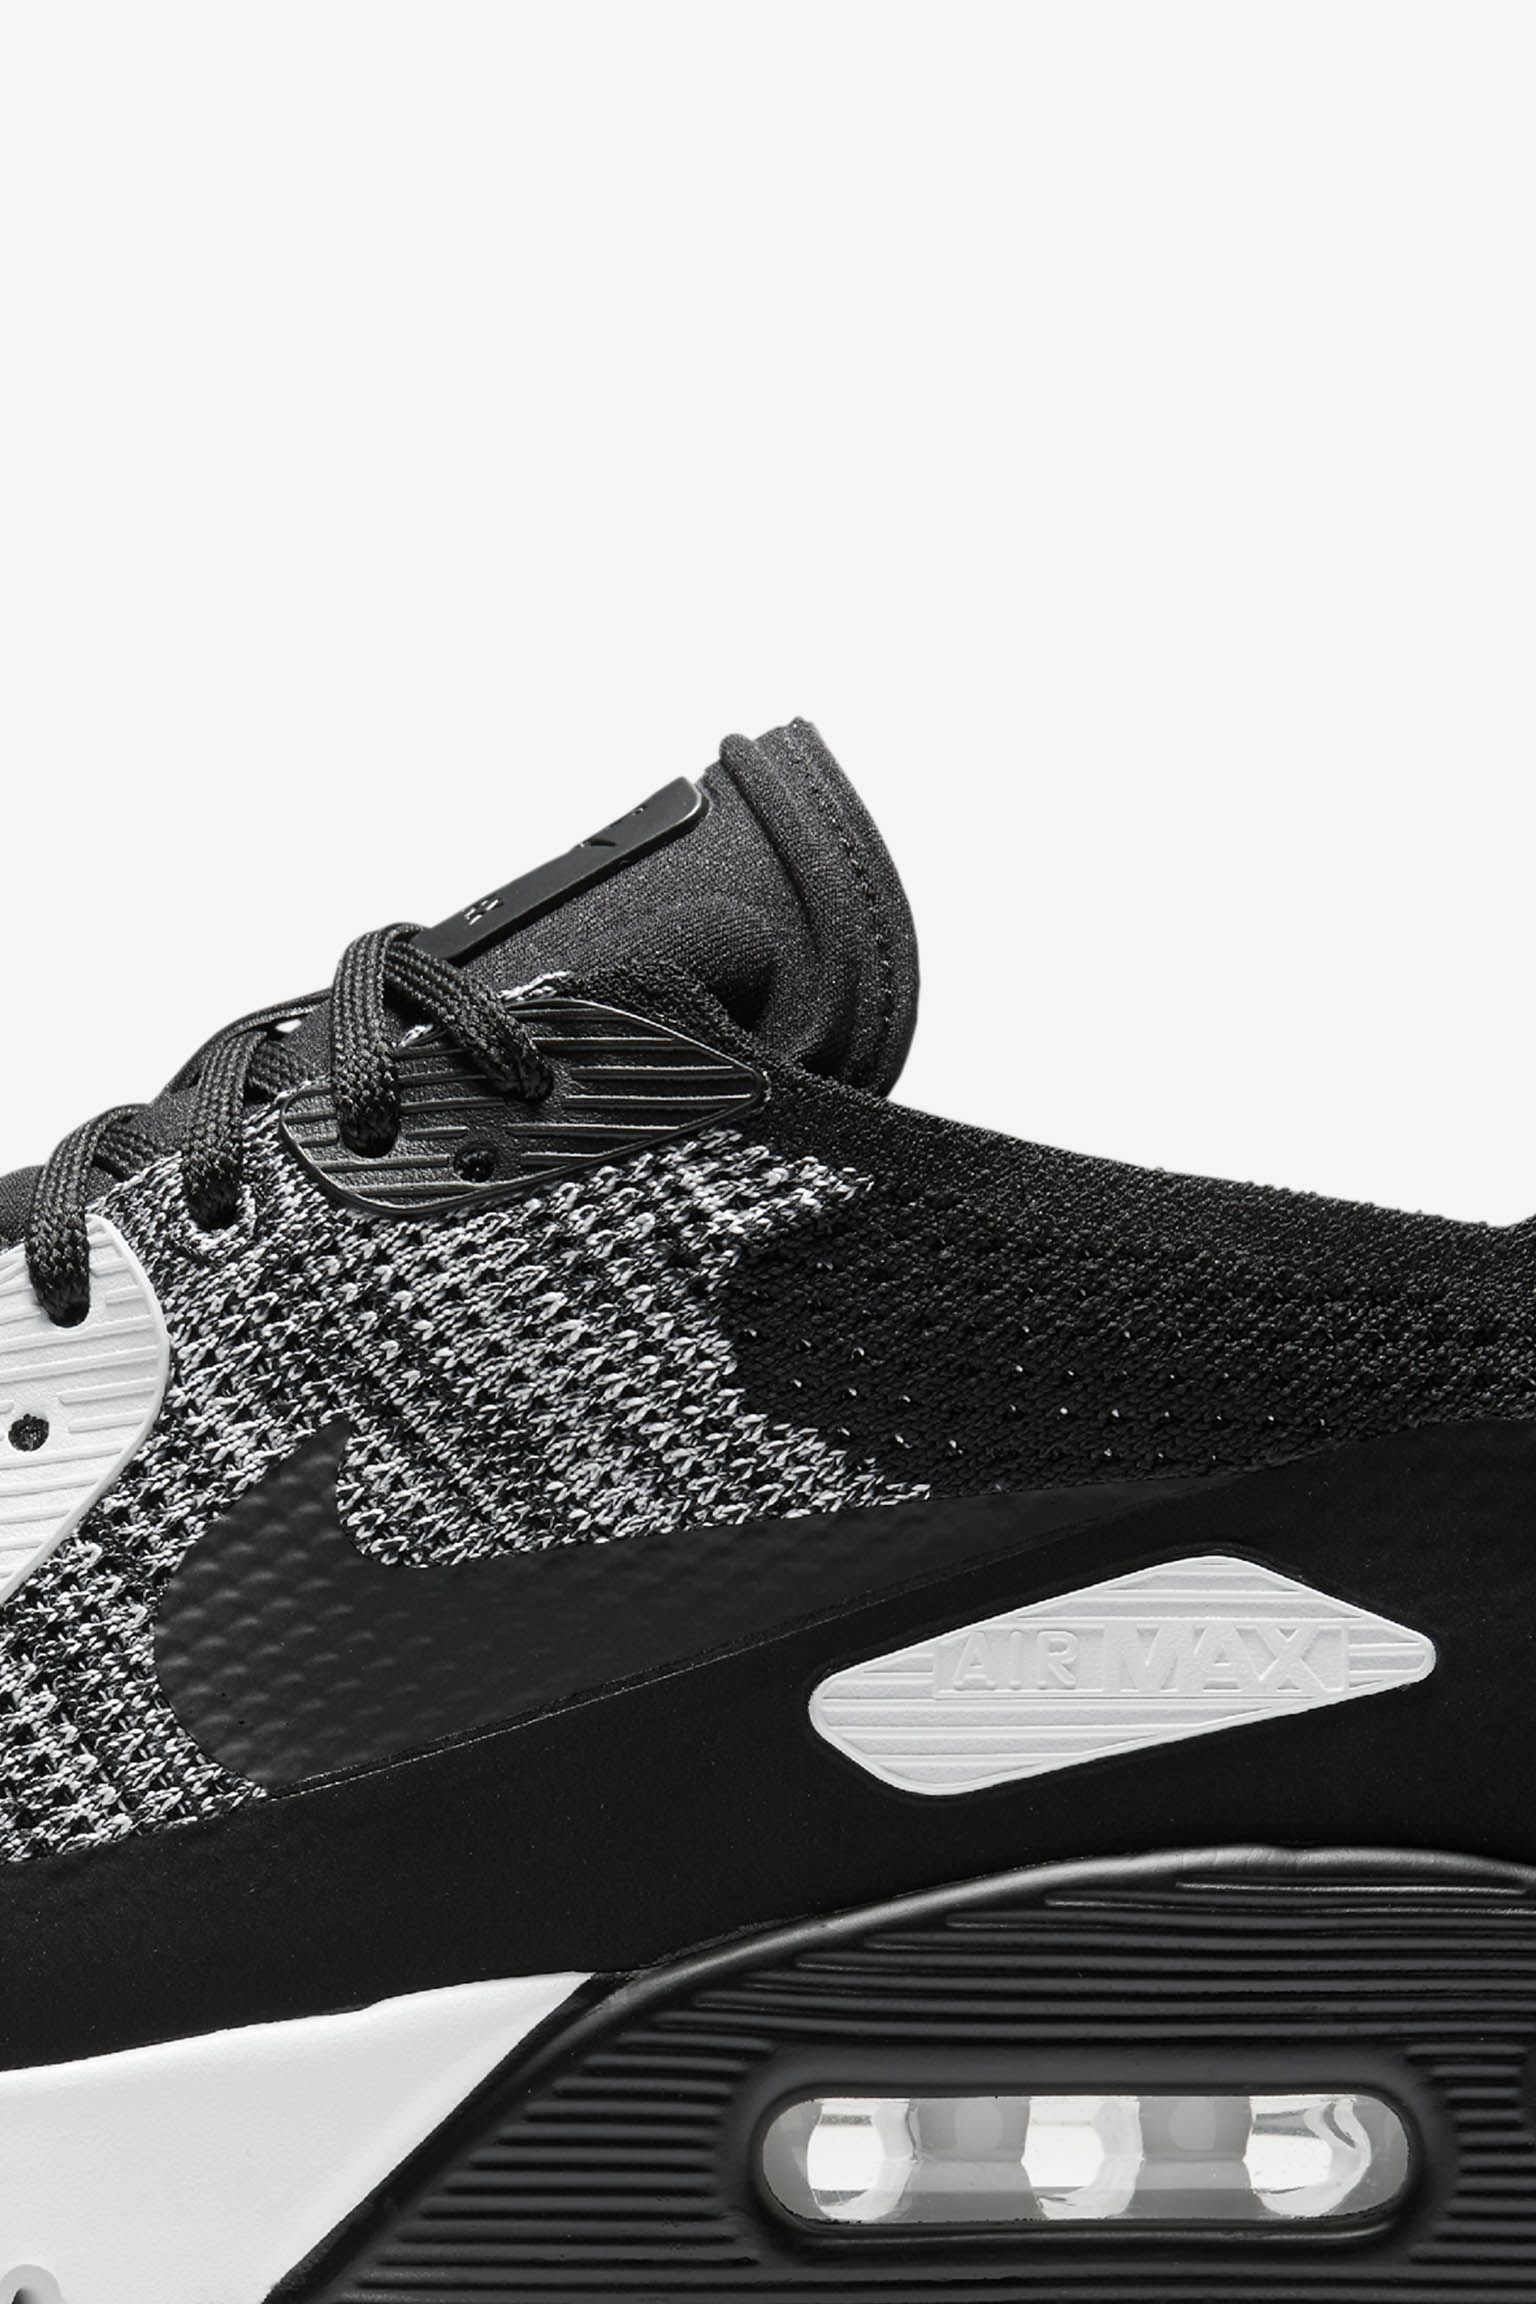 Nike Air Max 90 Ultra 2.0 Flyknit 'Black & White'